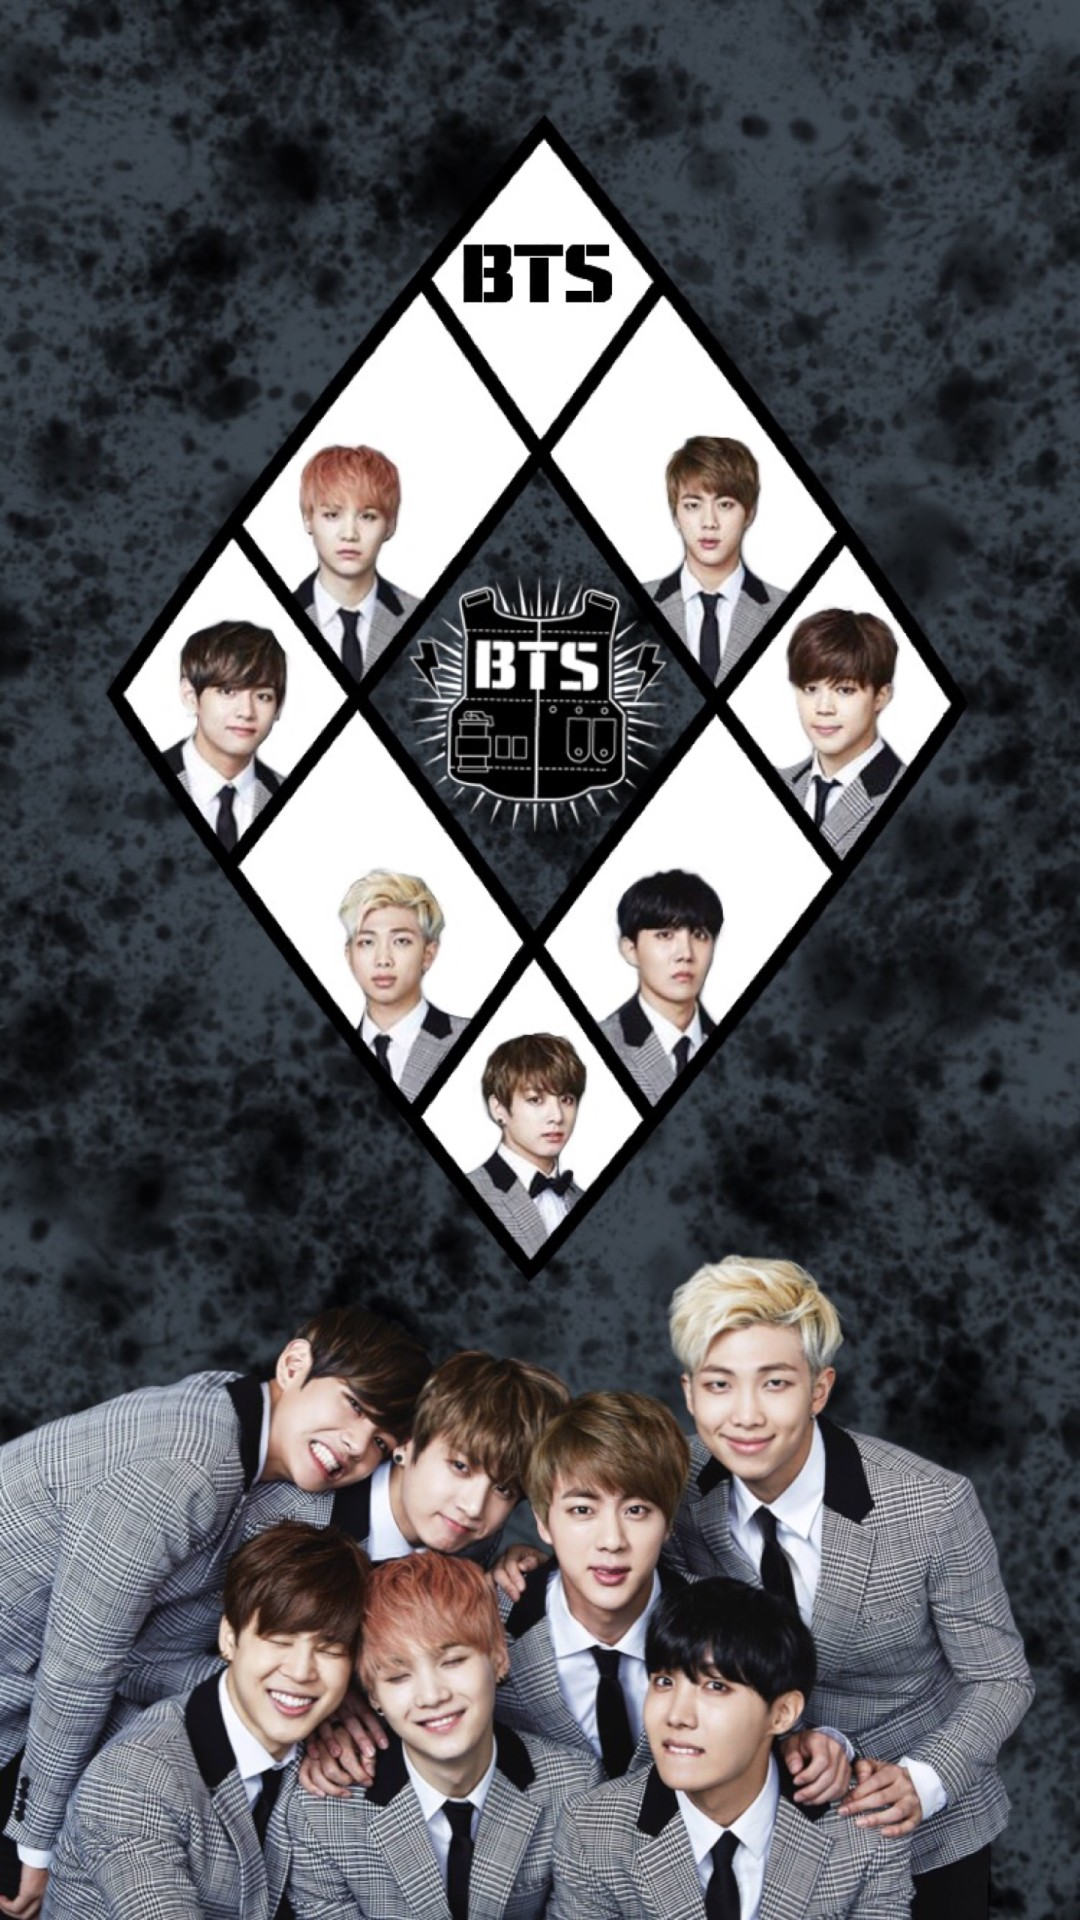 BTS wallpaper Download beautiful High Resolution 1080x1920